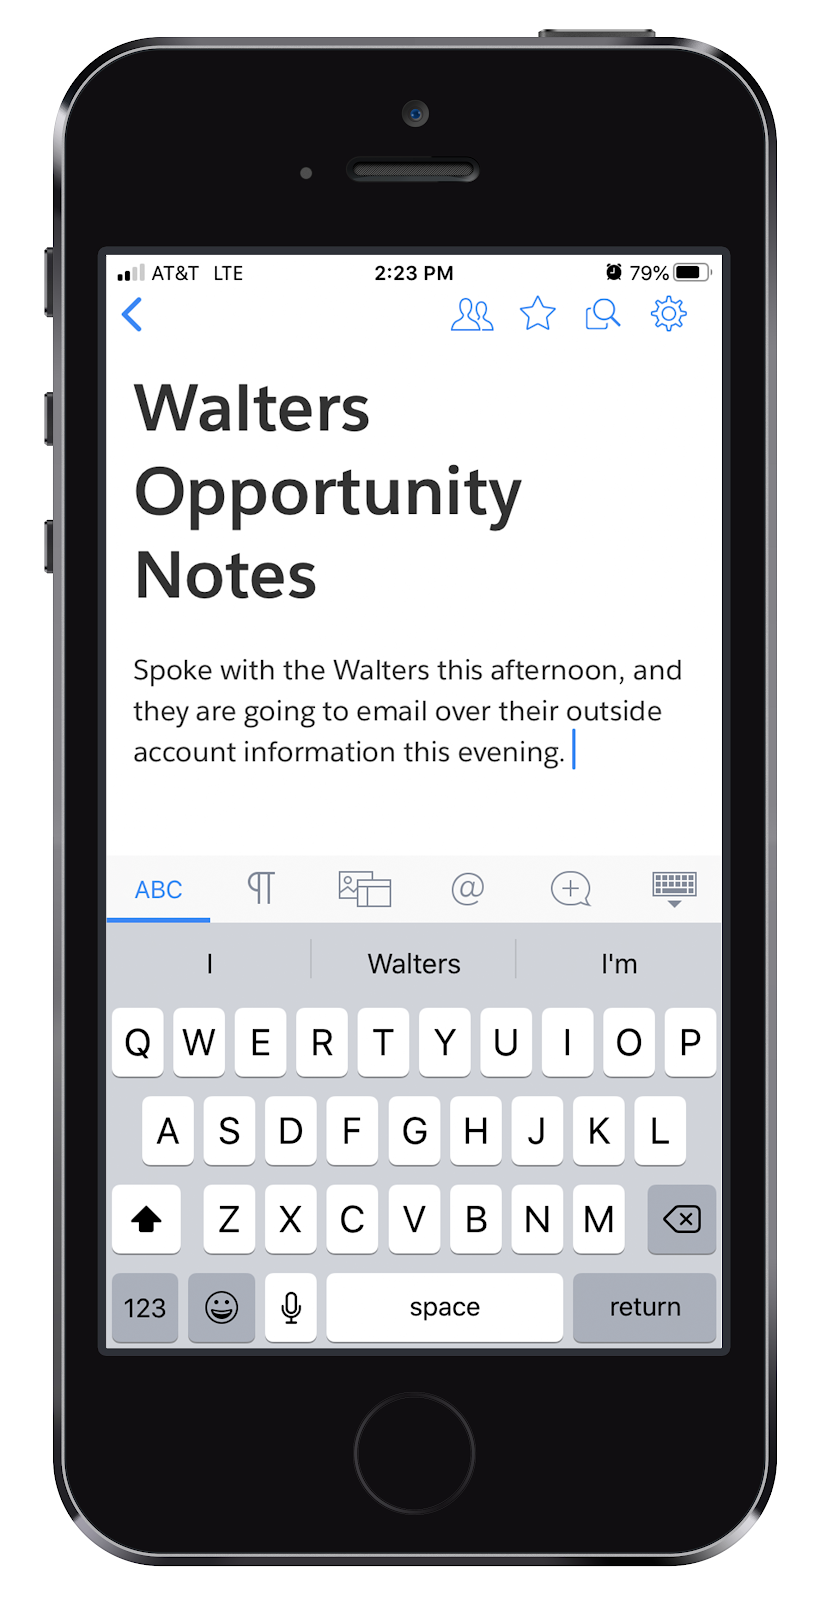 A mobile phone showing Damien editing the Walters's opportunity notes in Quip.